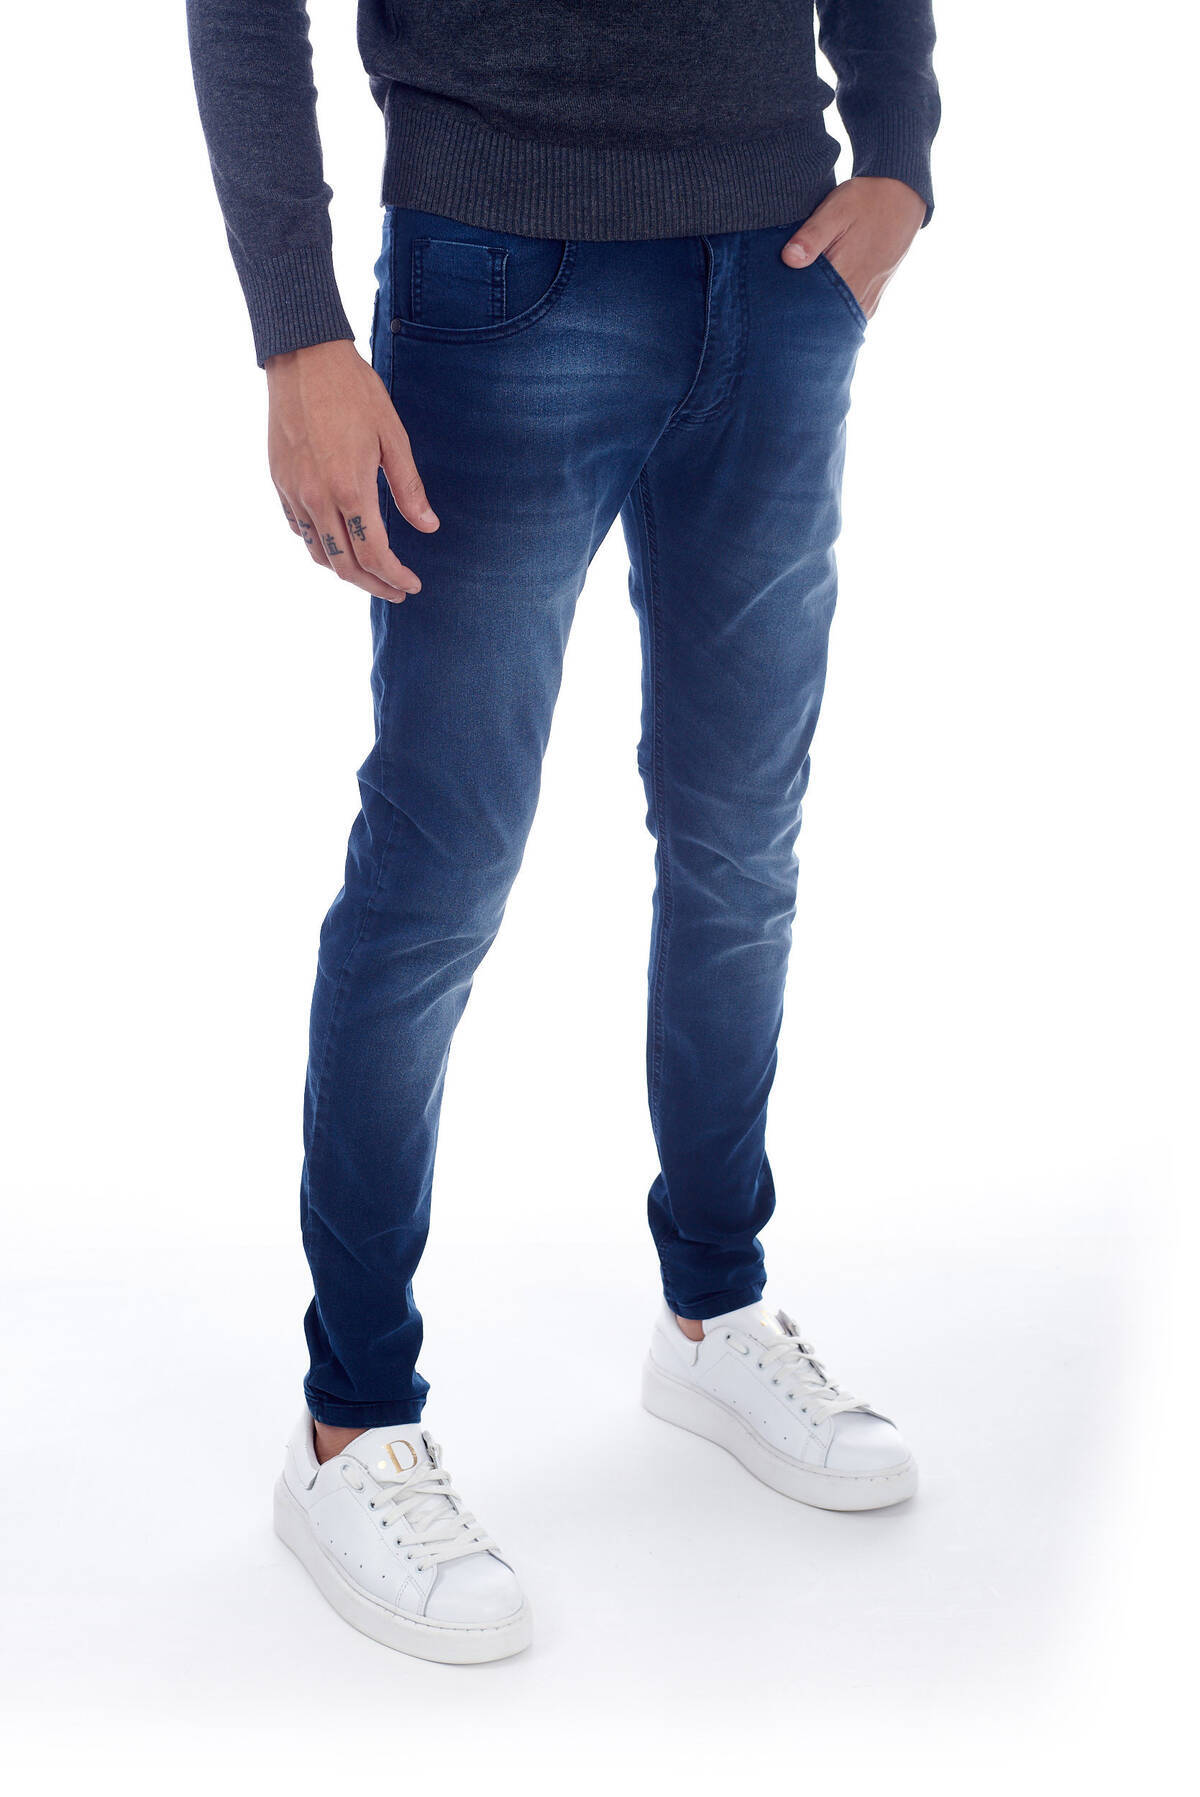 Imagen producto JEANS BLUE. SKINNY. CHUPIN  5